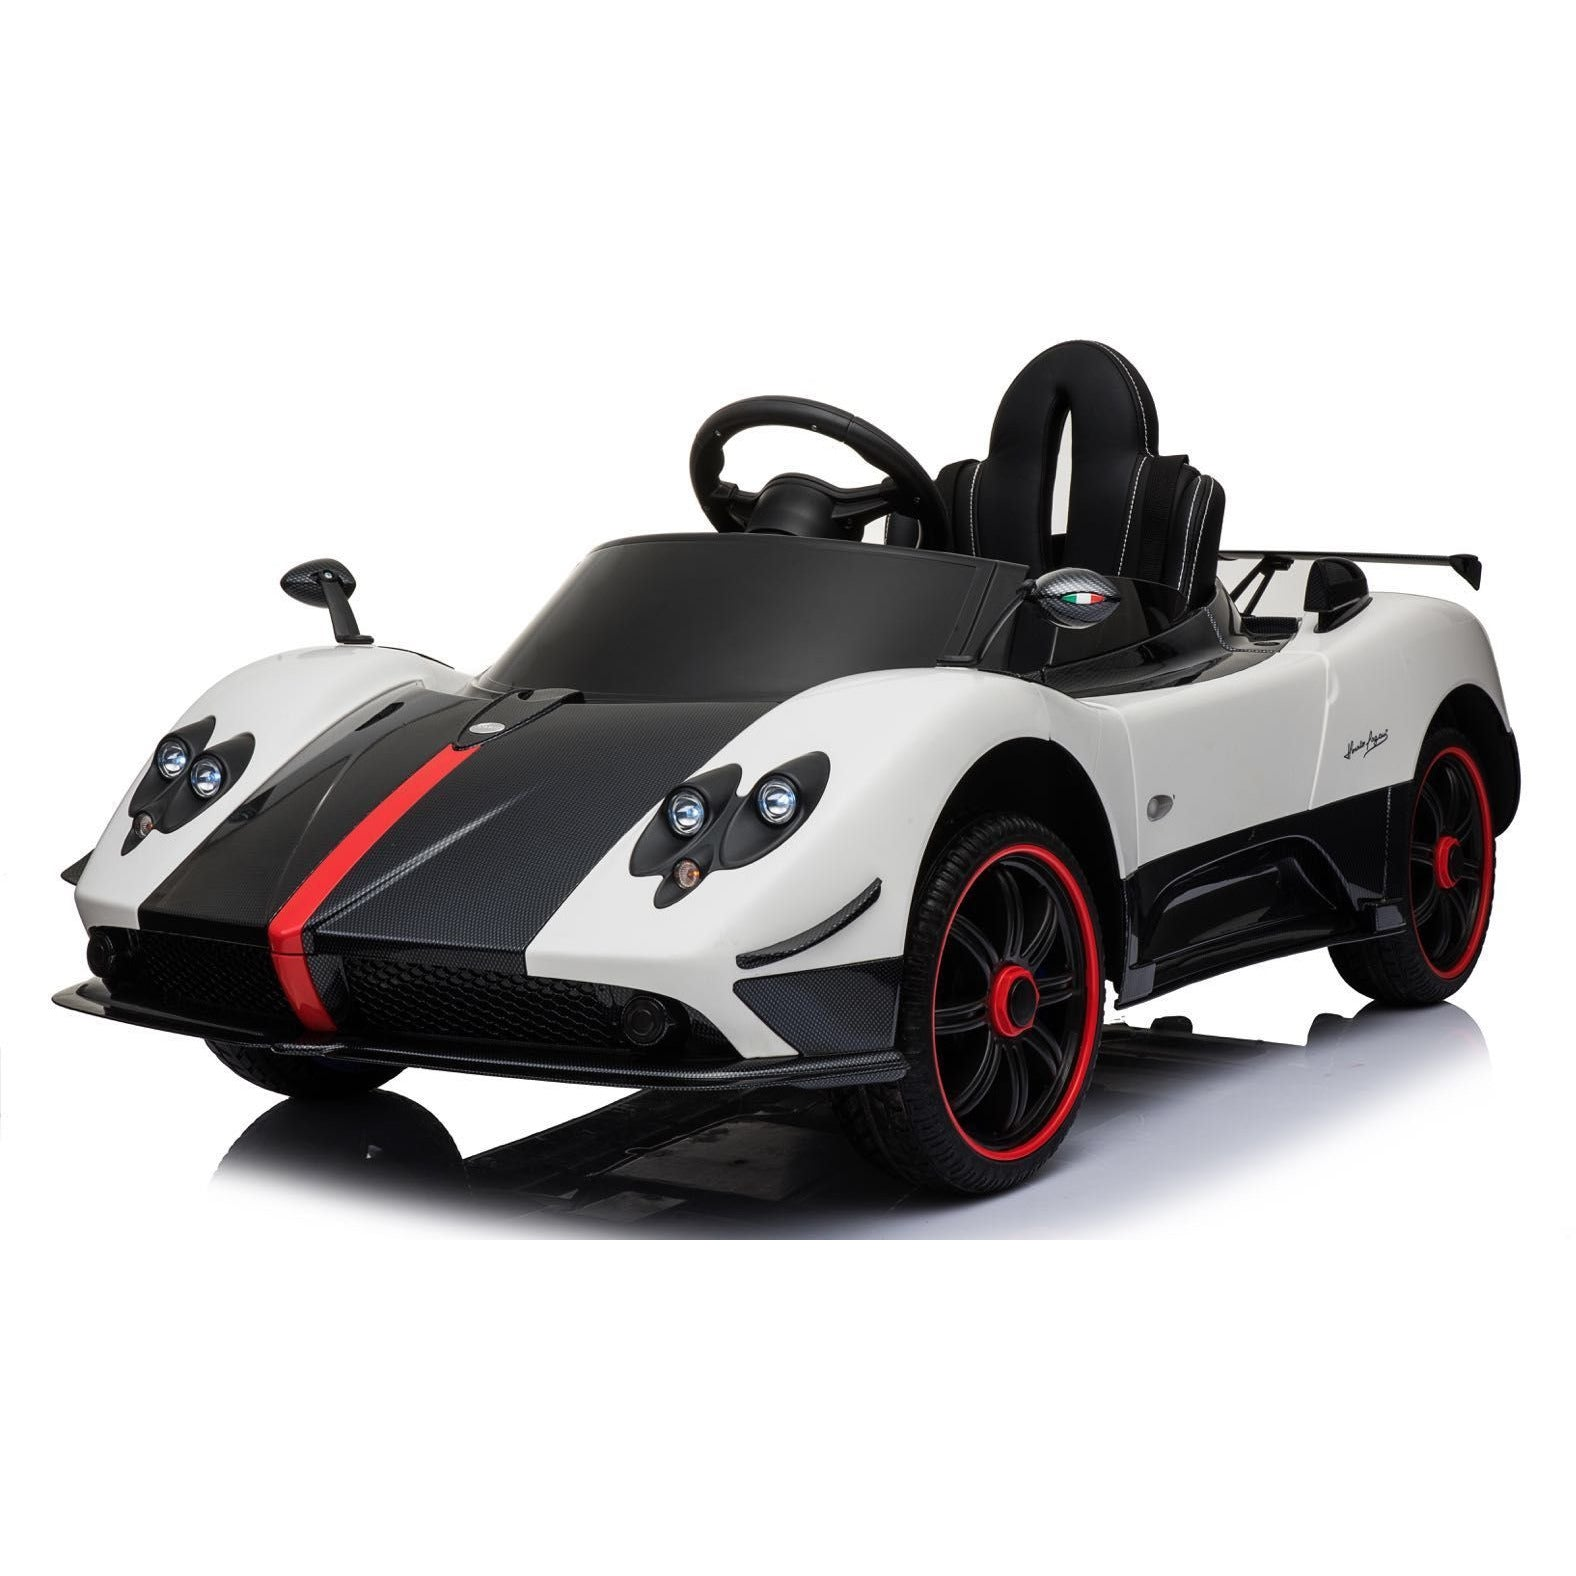 Raf Licensed Pagani Zonda Cinque Roadster 12v Ride on Car - rafplay